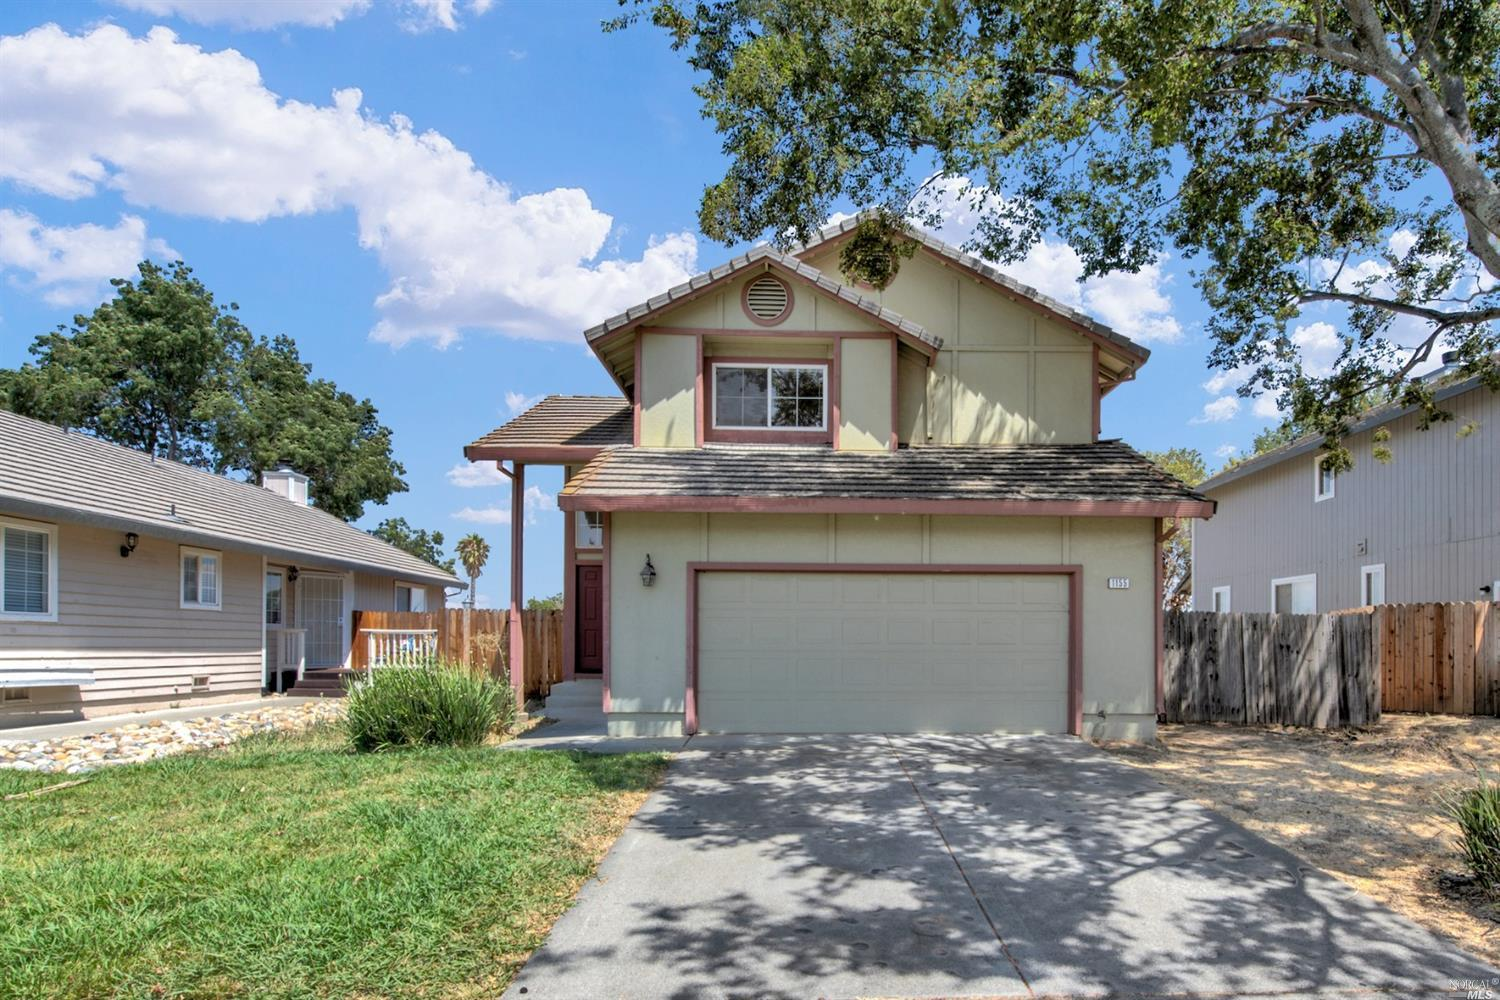 First time buyer or investor special right here! Located in a quiet court, this home boasts a large open living space with spacious eat-in kitchen, indoor laundry and large outdoor space ready for buyer to make their own. This lovely home is ready for a new buyer today! Close to shopping, schools and easy access to highway 80! Come see today!